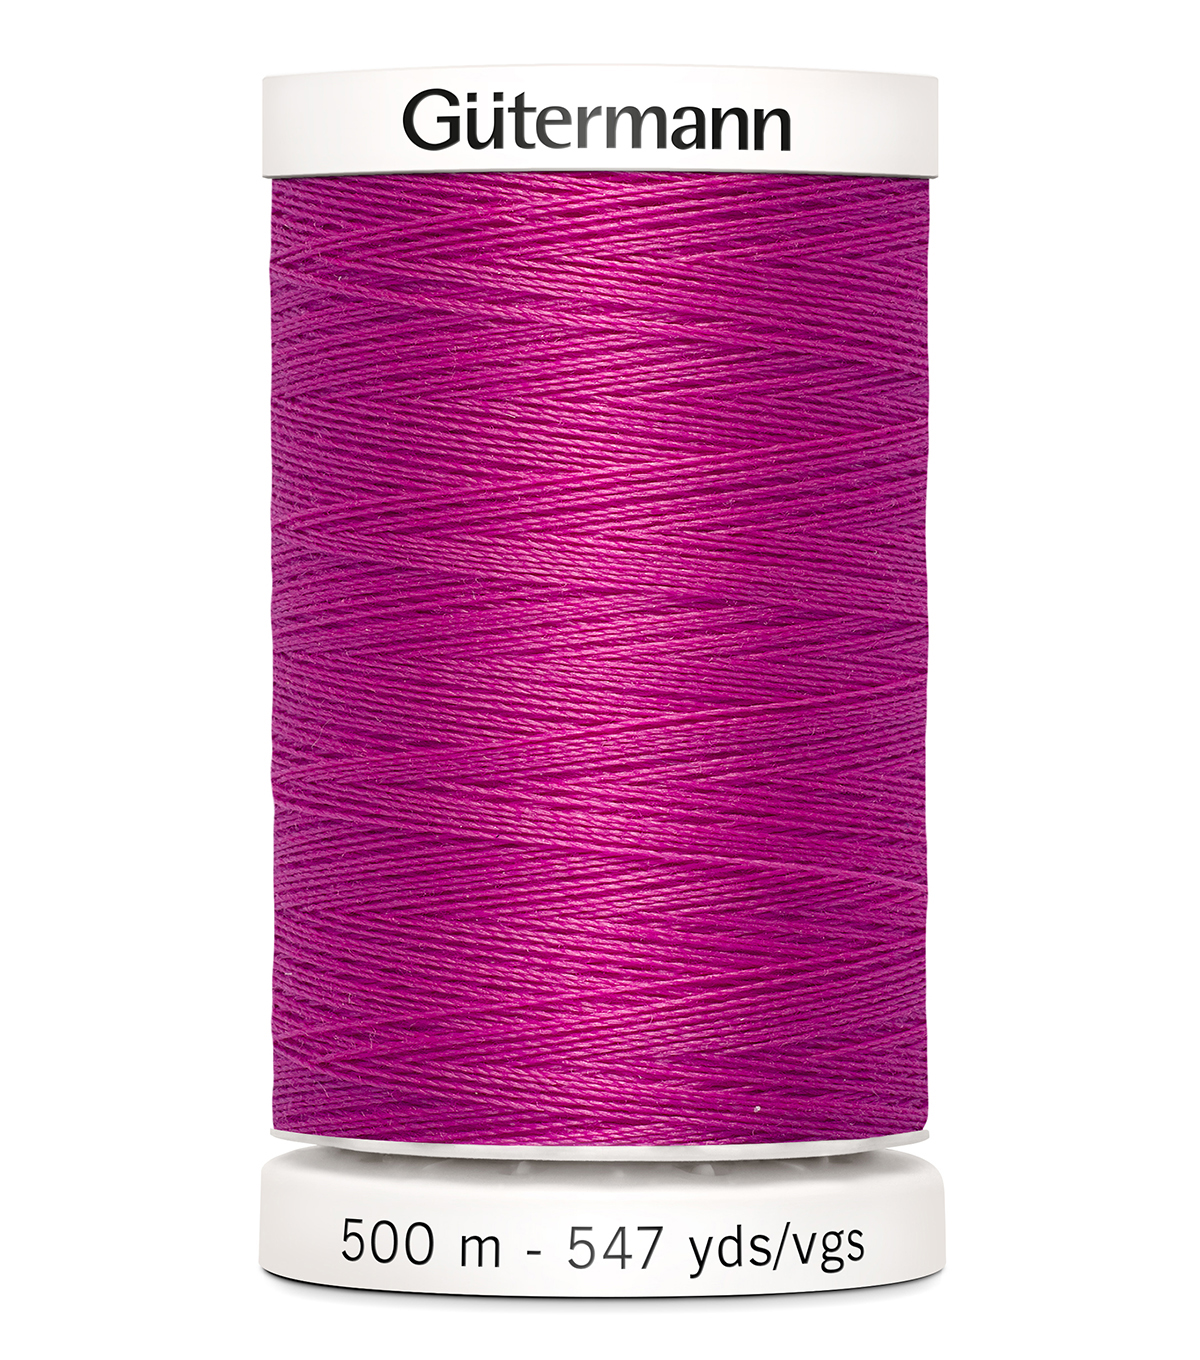 Gutermann Sew-All Thread 500 Meter, Dusty Rose